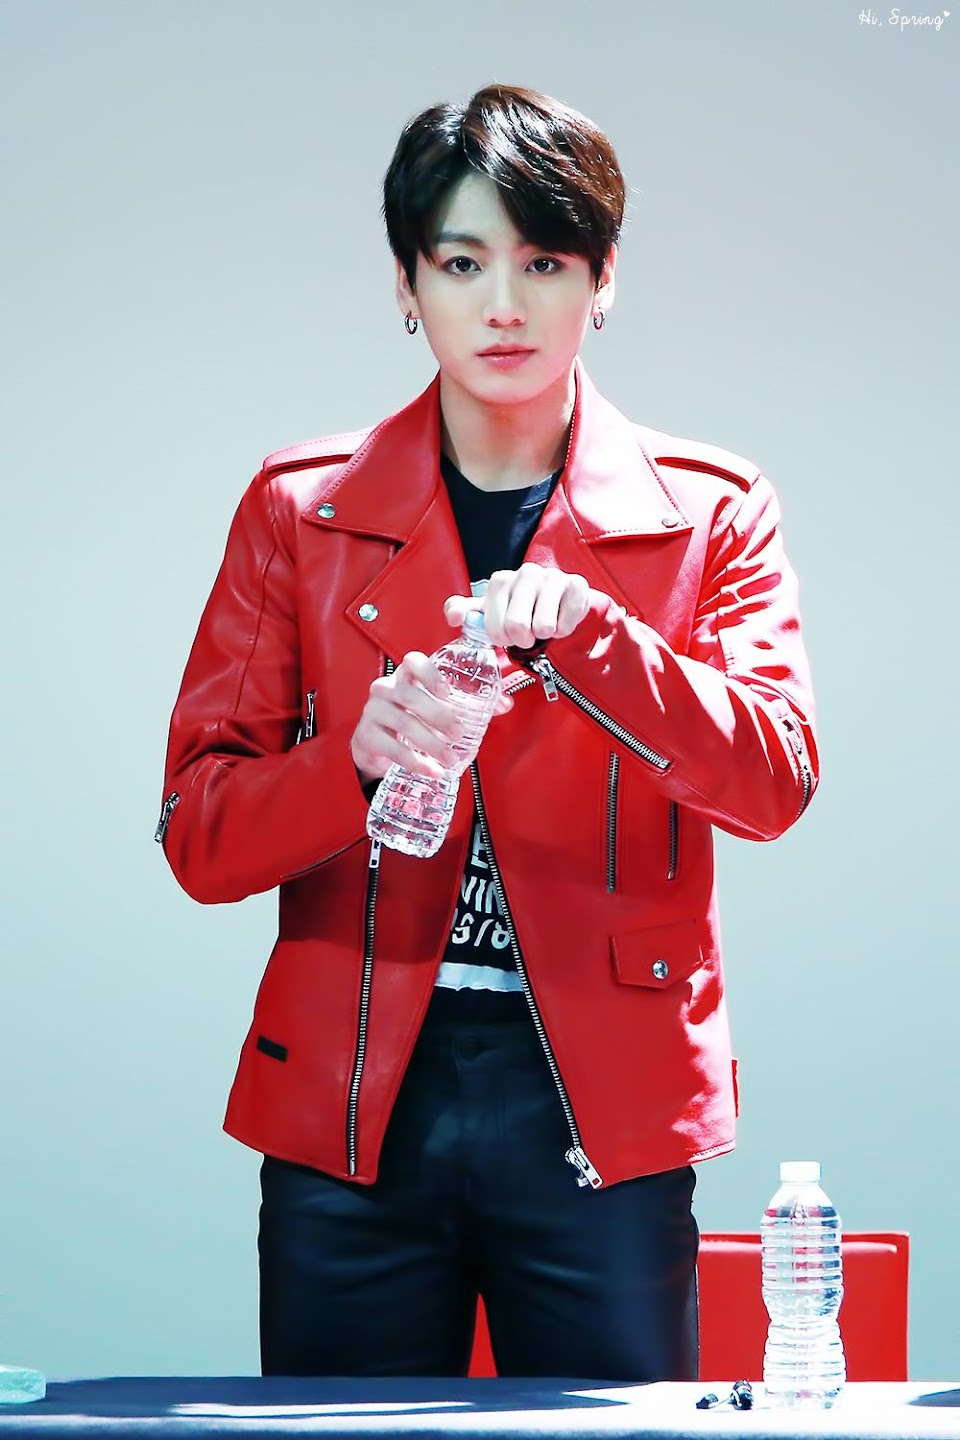 jungkookrainbow_red_1